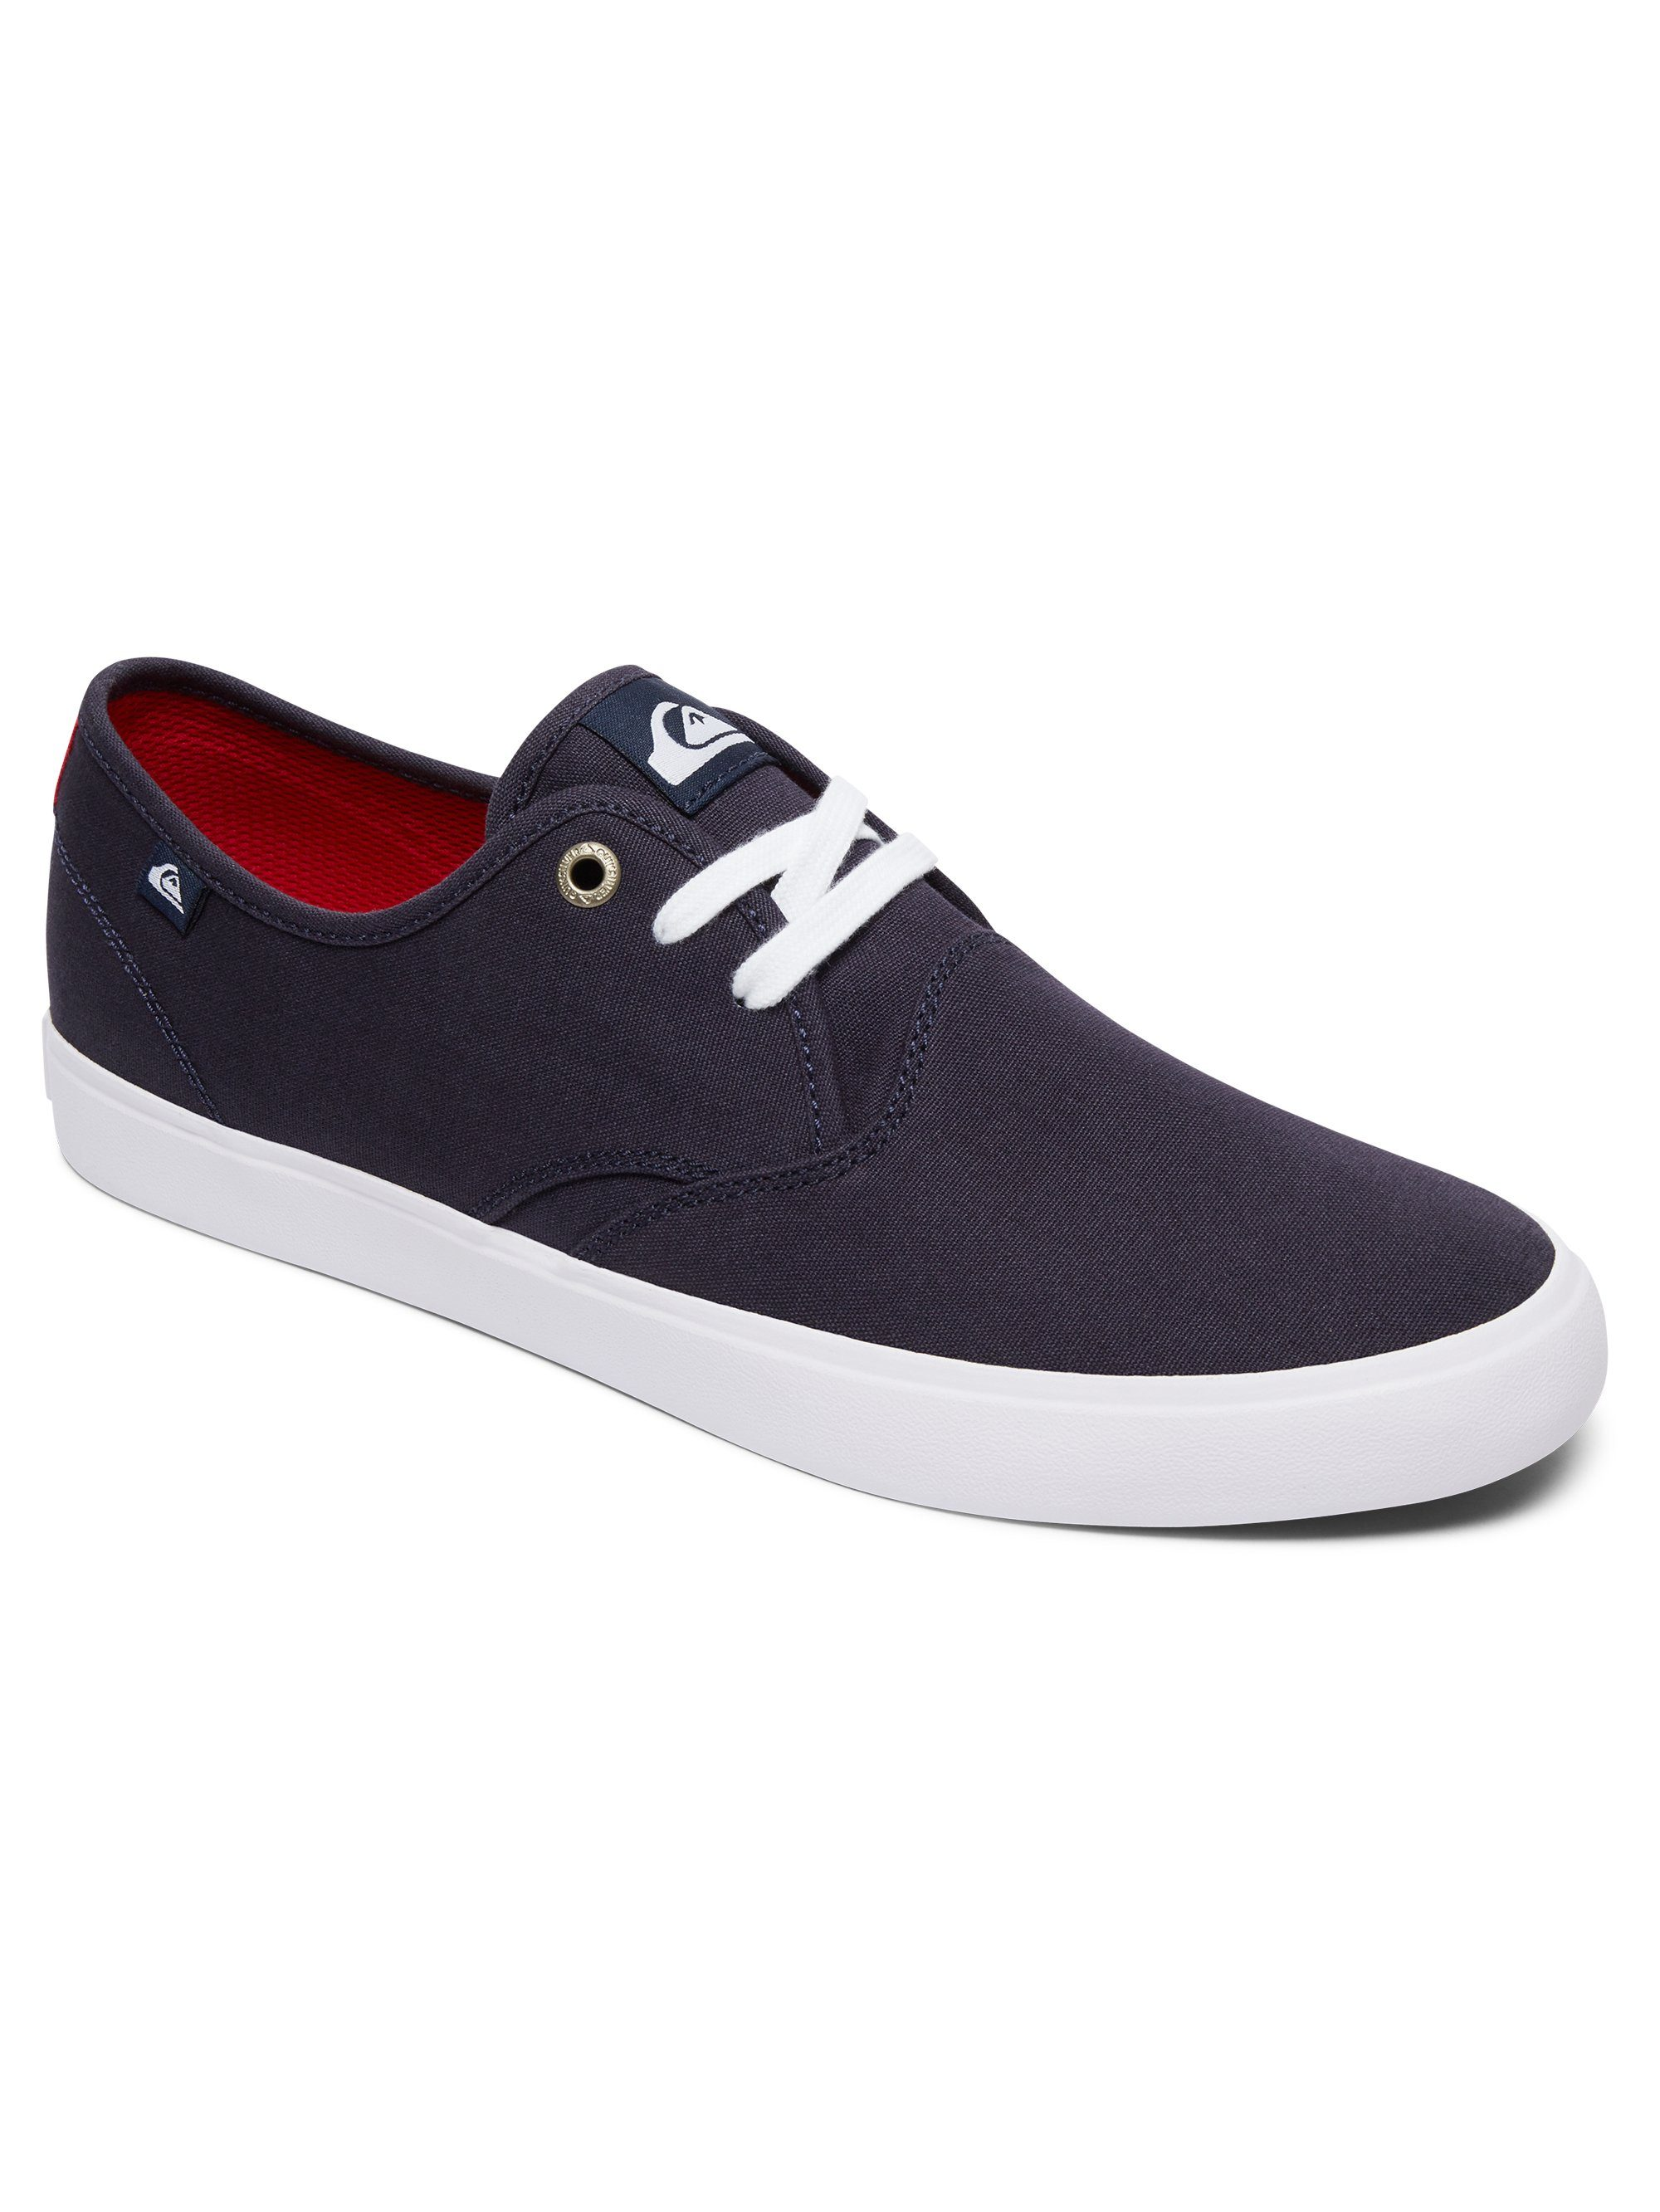 Quiksilver Schuhe Shorebreak online kaufen  Blue#ft5_slash#red#ft5_slash#white